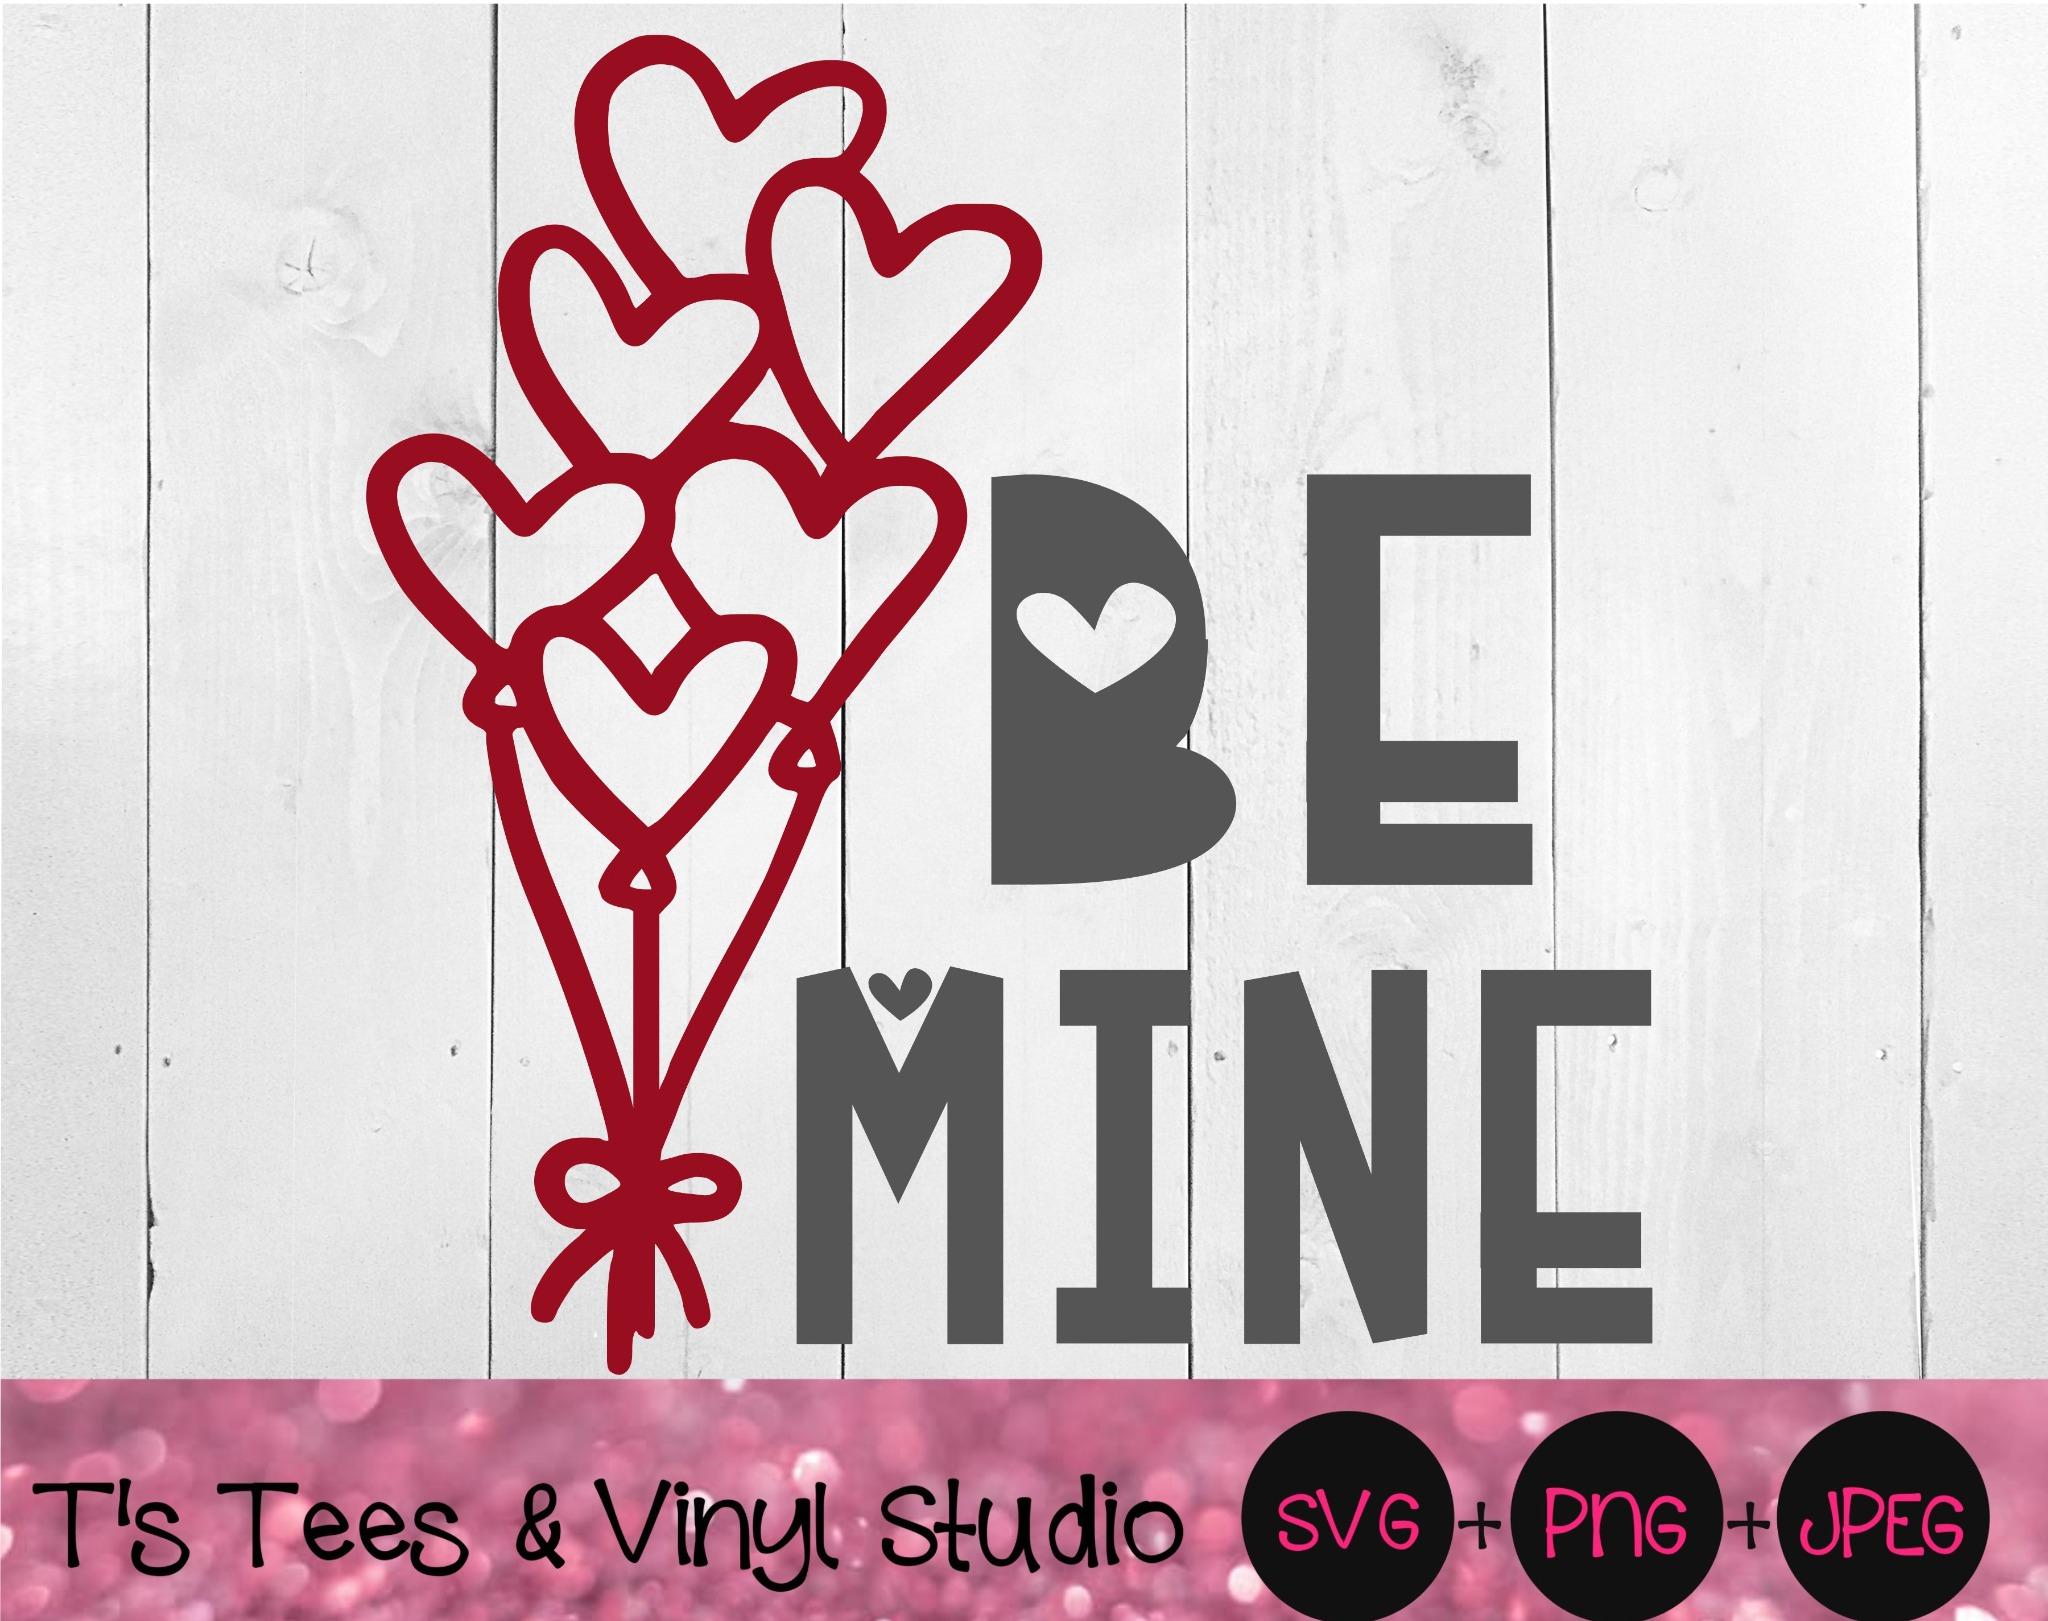 Be Mine Svg, Valentine's Day, Be My Valentine, Romantic Png, Romance Svg, Hearts, Heart Balloons, In